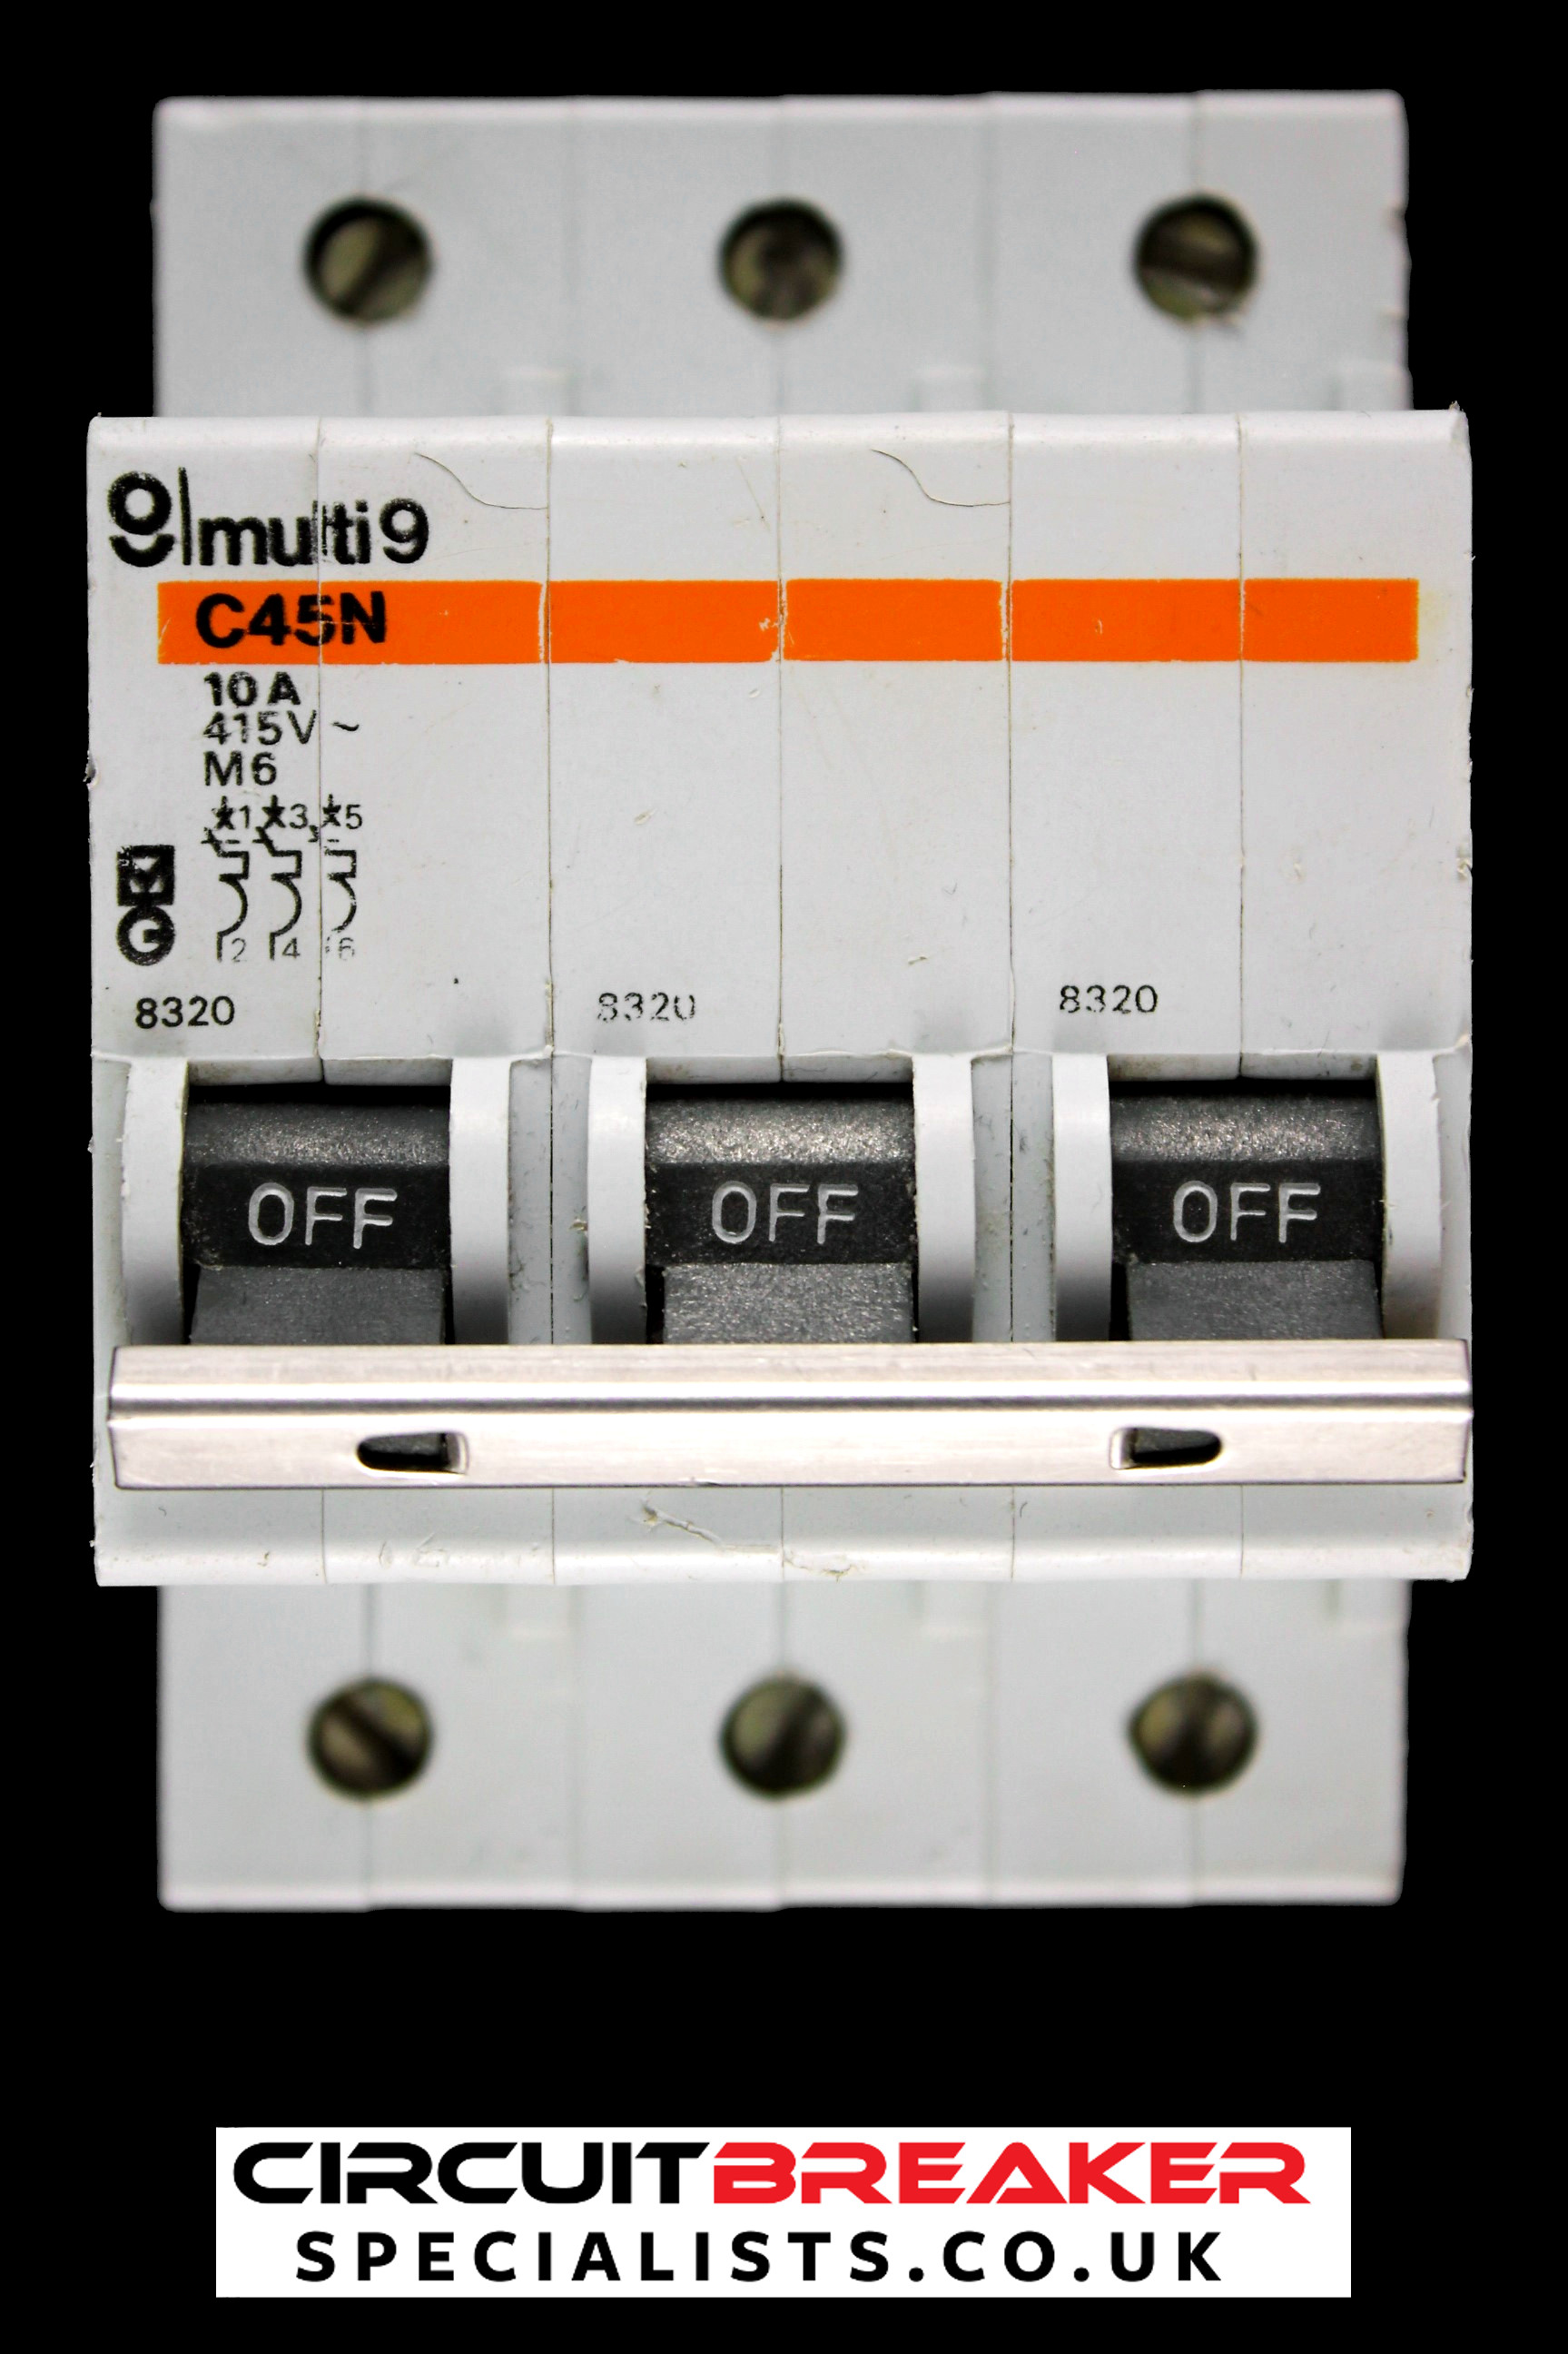 MERLIN GERIN 10 AMP TYPE 2 M6 TRIPLE POLE MCB CIRCUIT BREAKER 8320 C45N